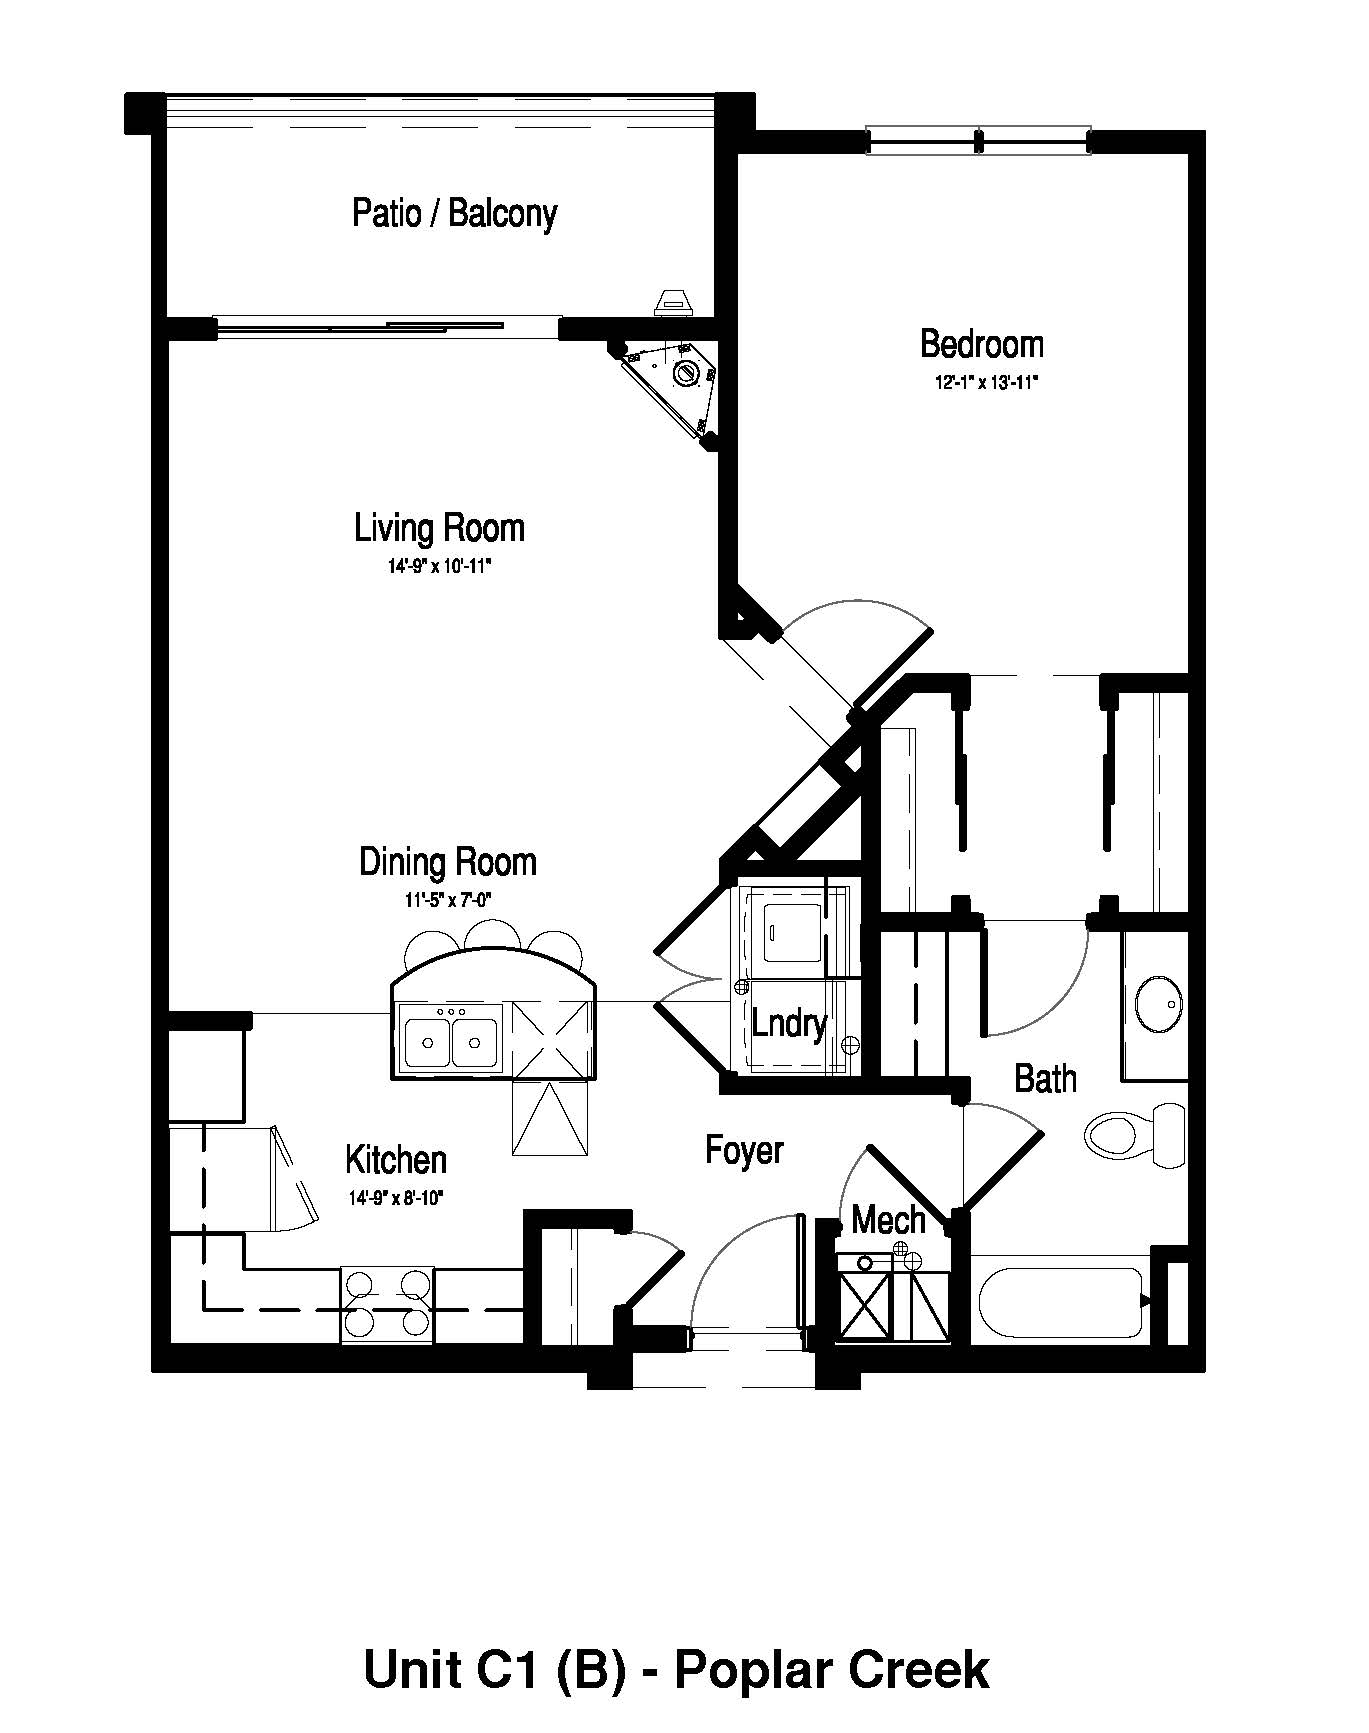 1 Bedroom, 1 Bath - 849 Sq. Ft. - Poplar Creek